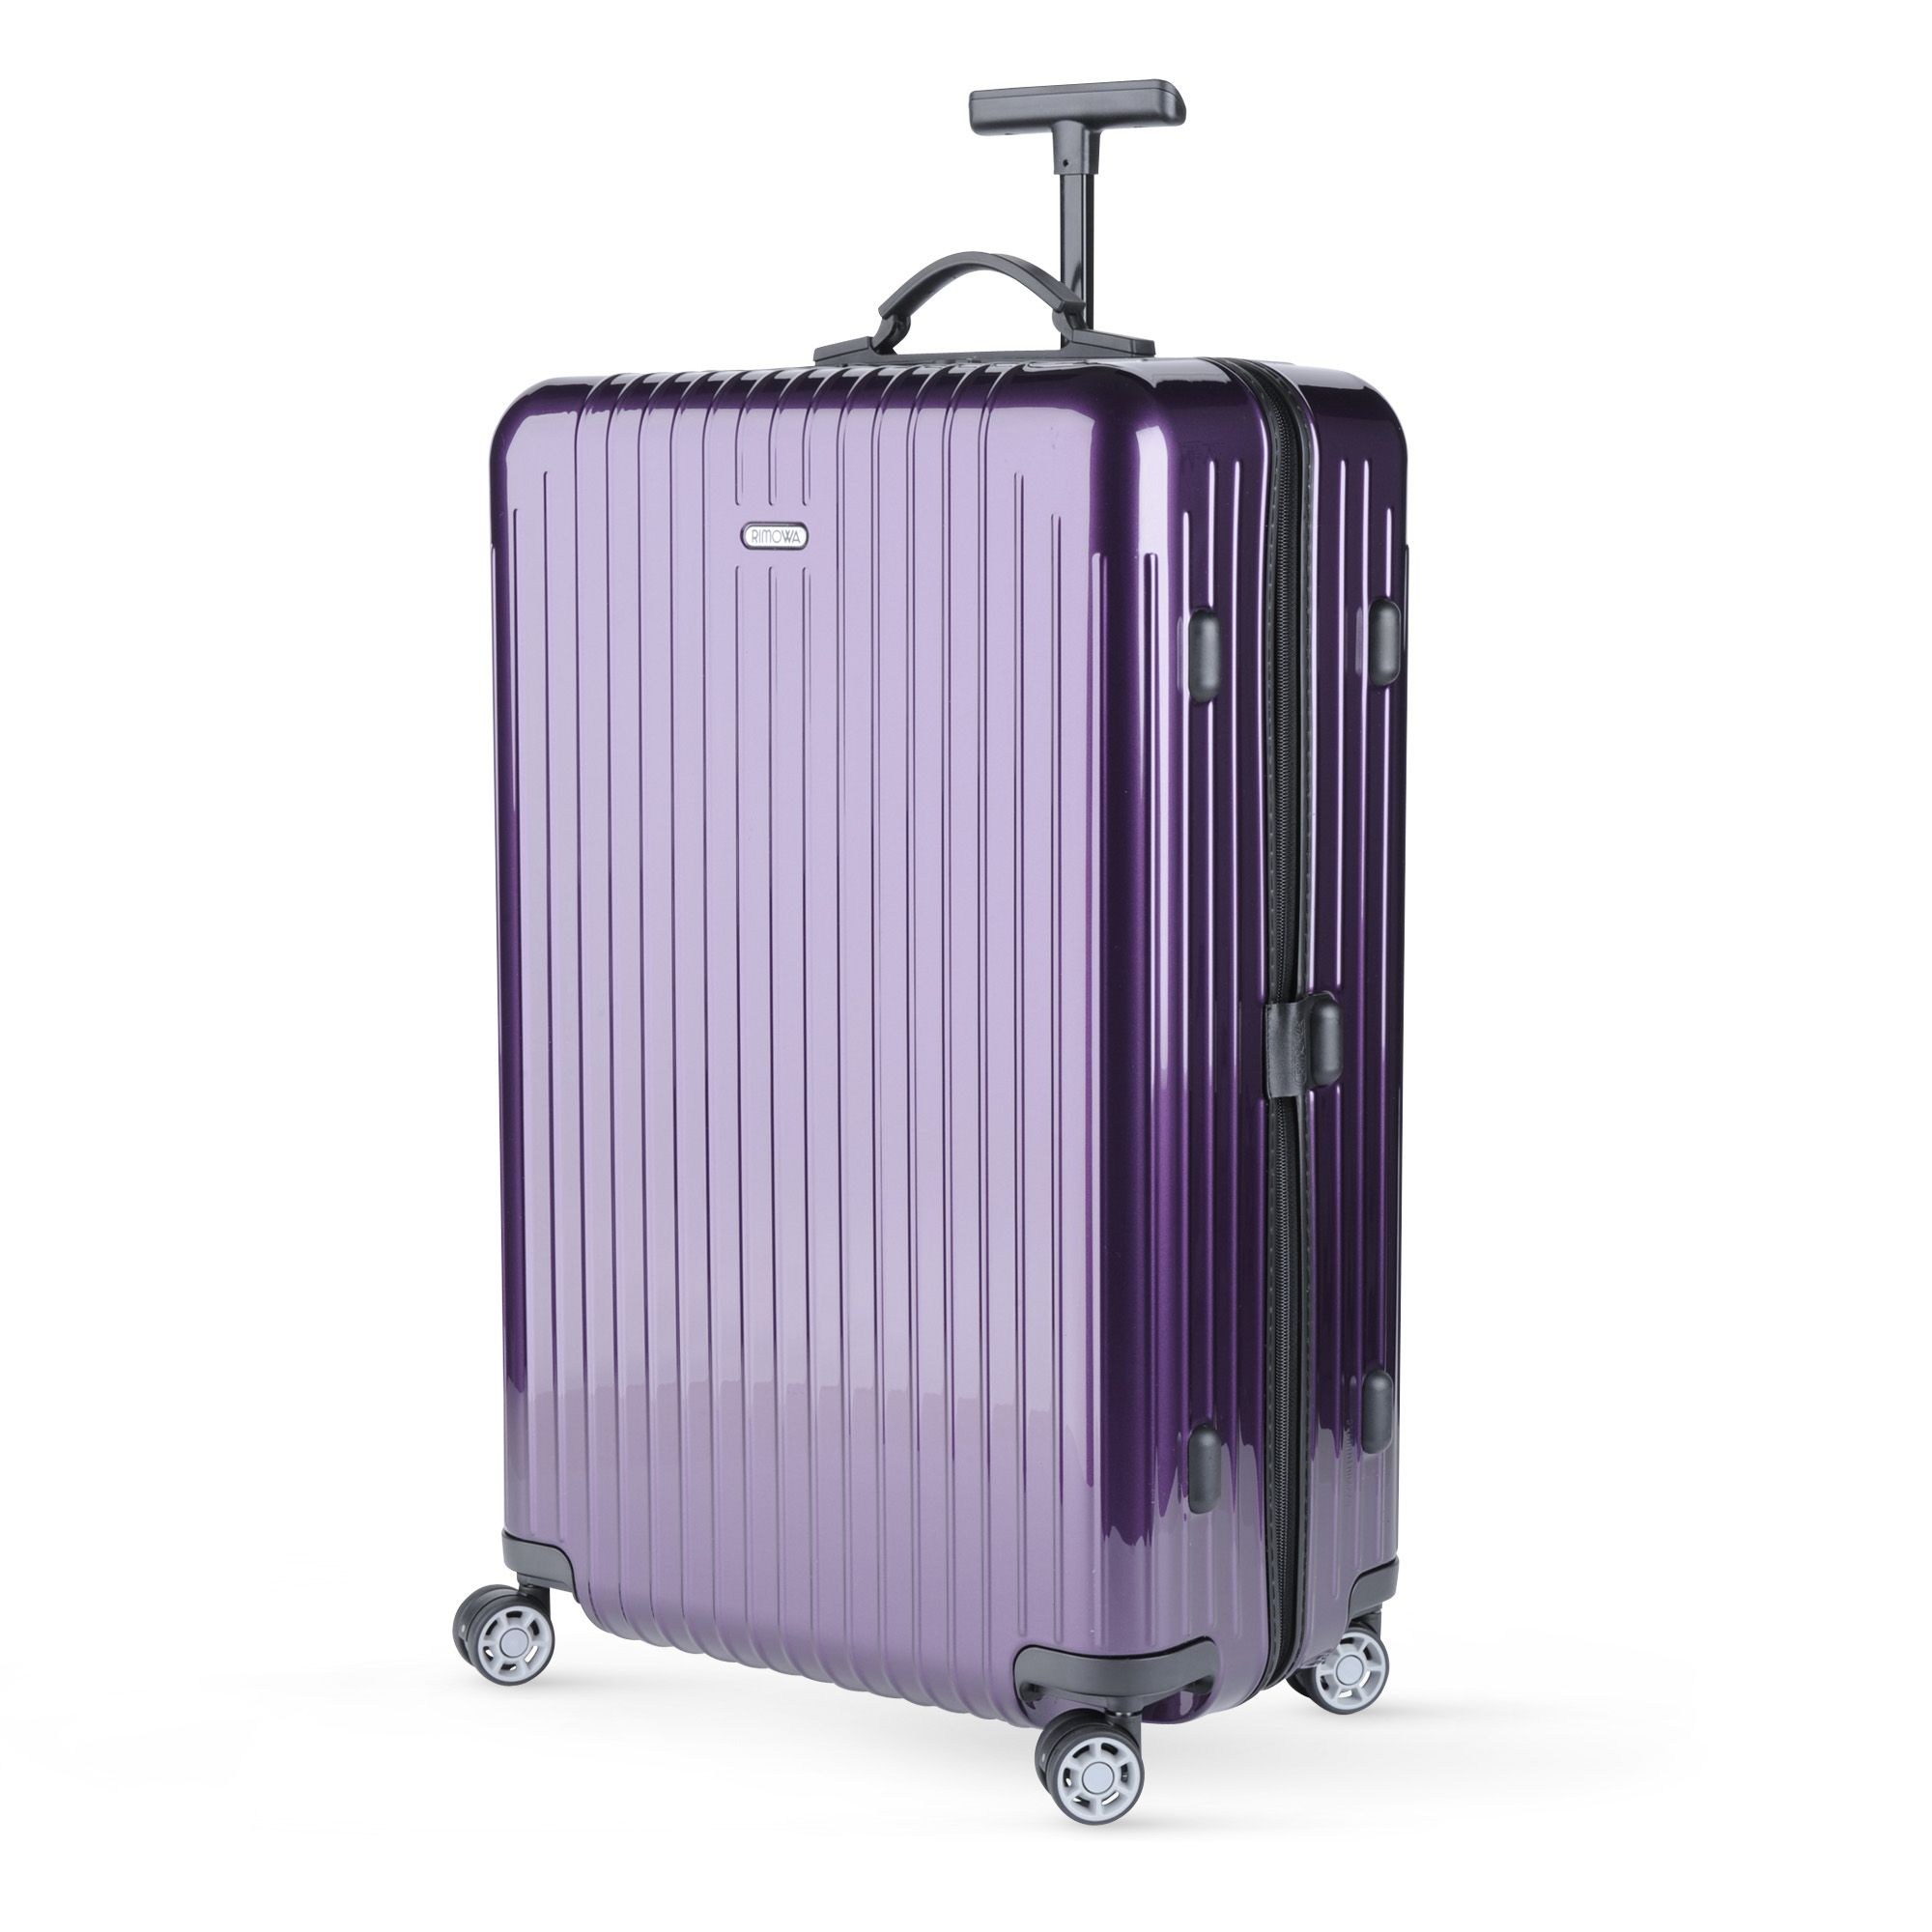 lyst rimowa salsa air spinner 77cm in purple for men. Black Bedroom Furniture Sets. Home Design Ideas